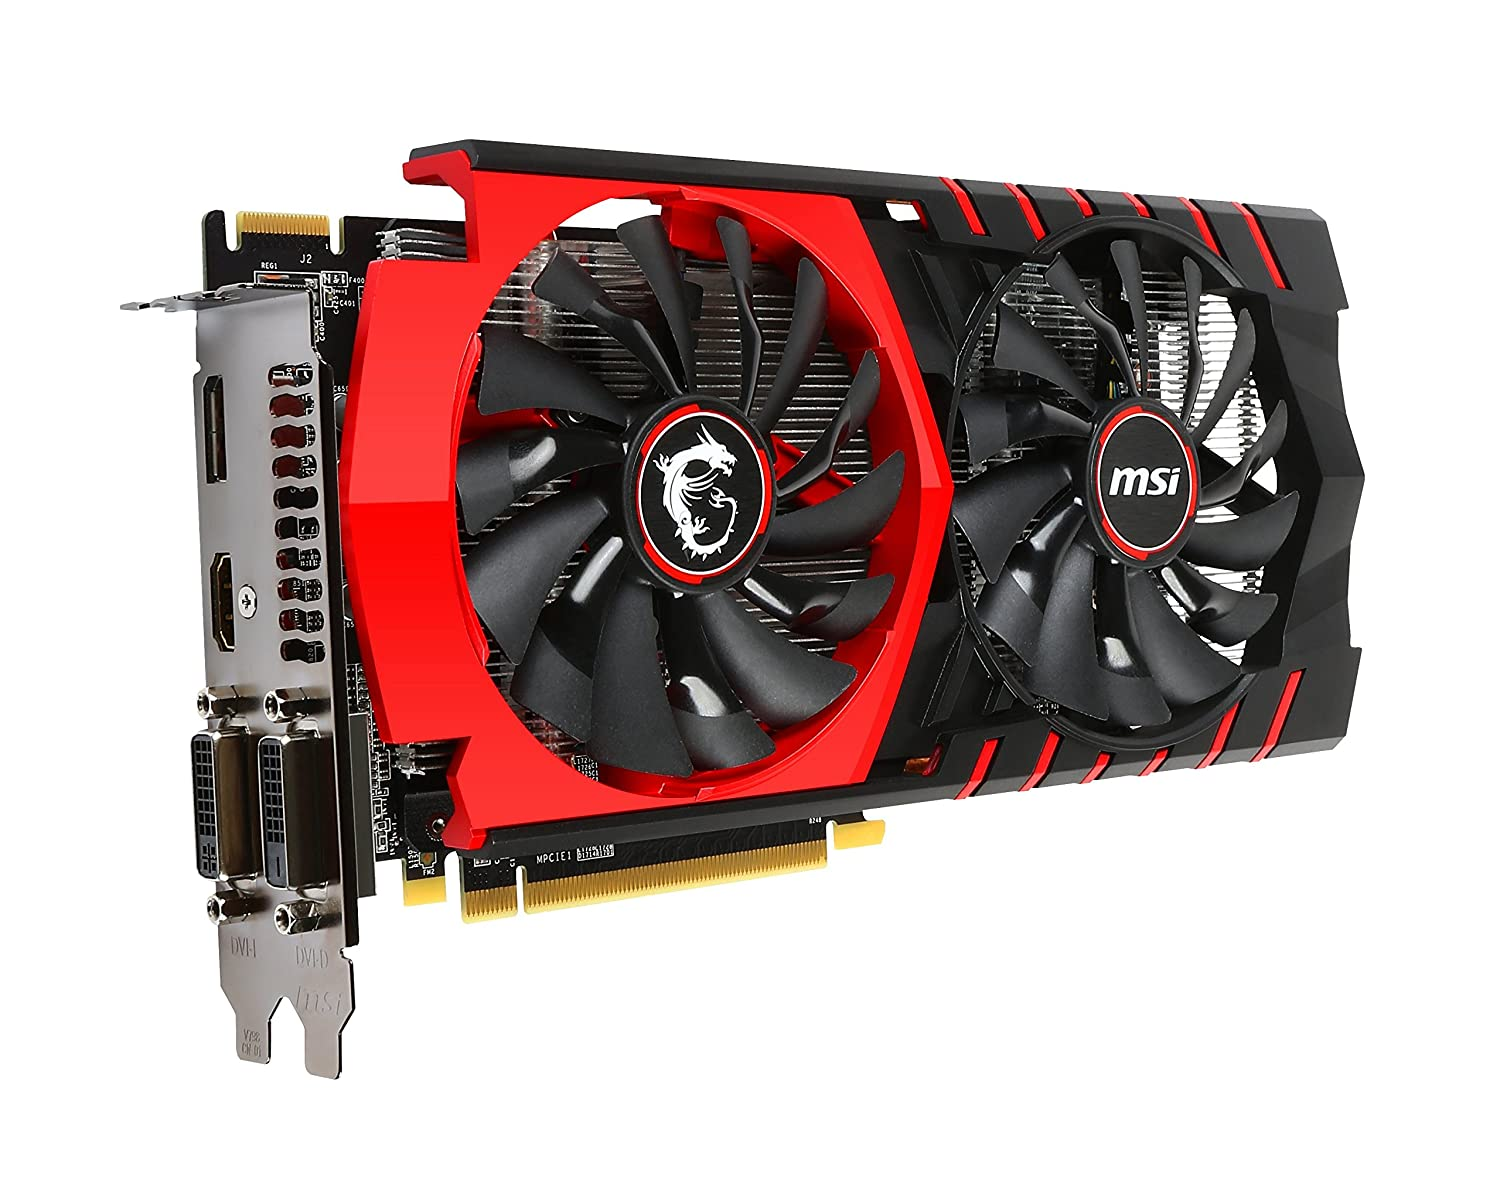 MSI R7 370 GAMING 4G Graphics Card